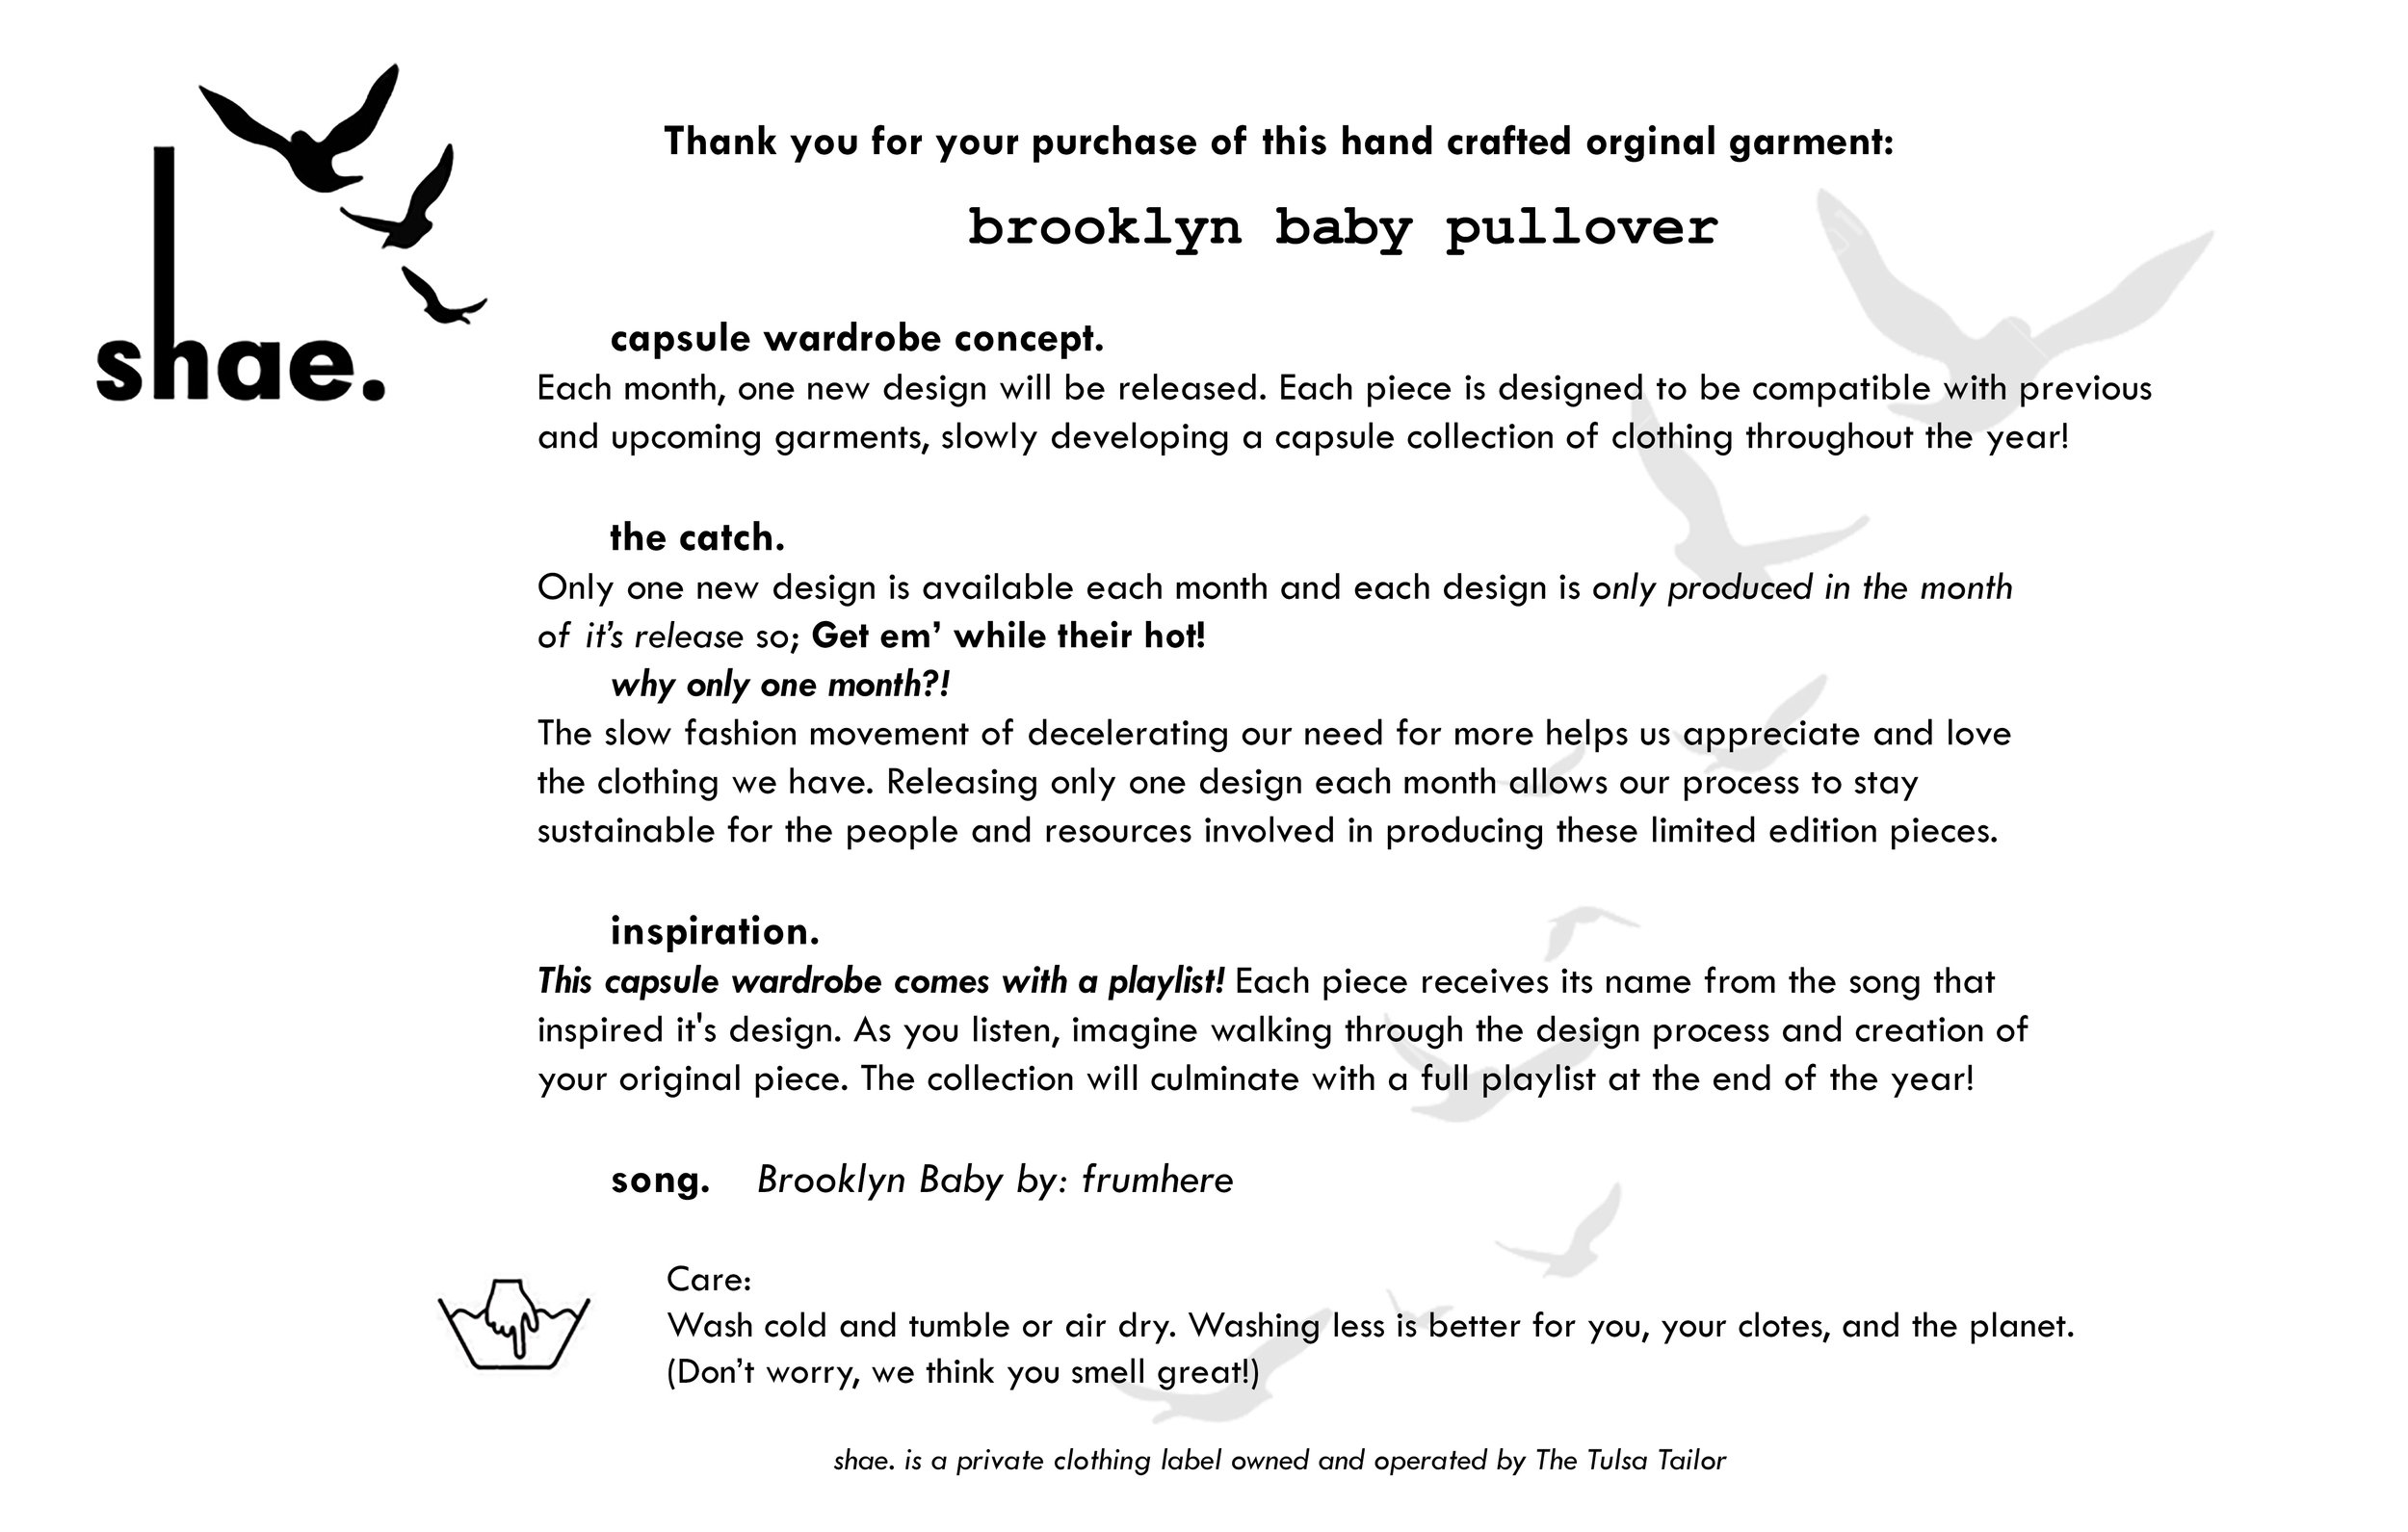 Brooklyn Baby Pullover Concept Card also included with each package for context on intent of the clothing line.